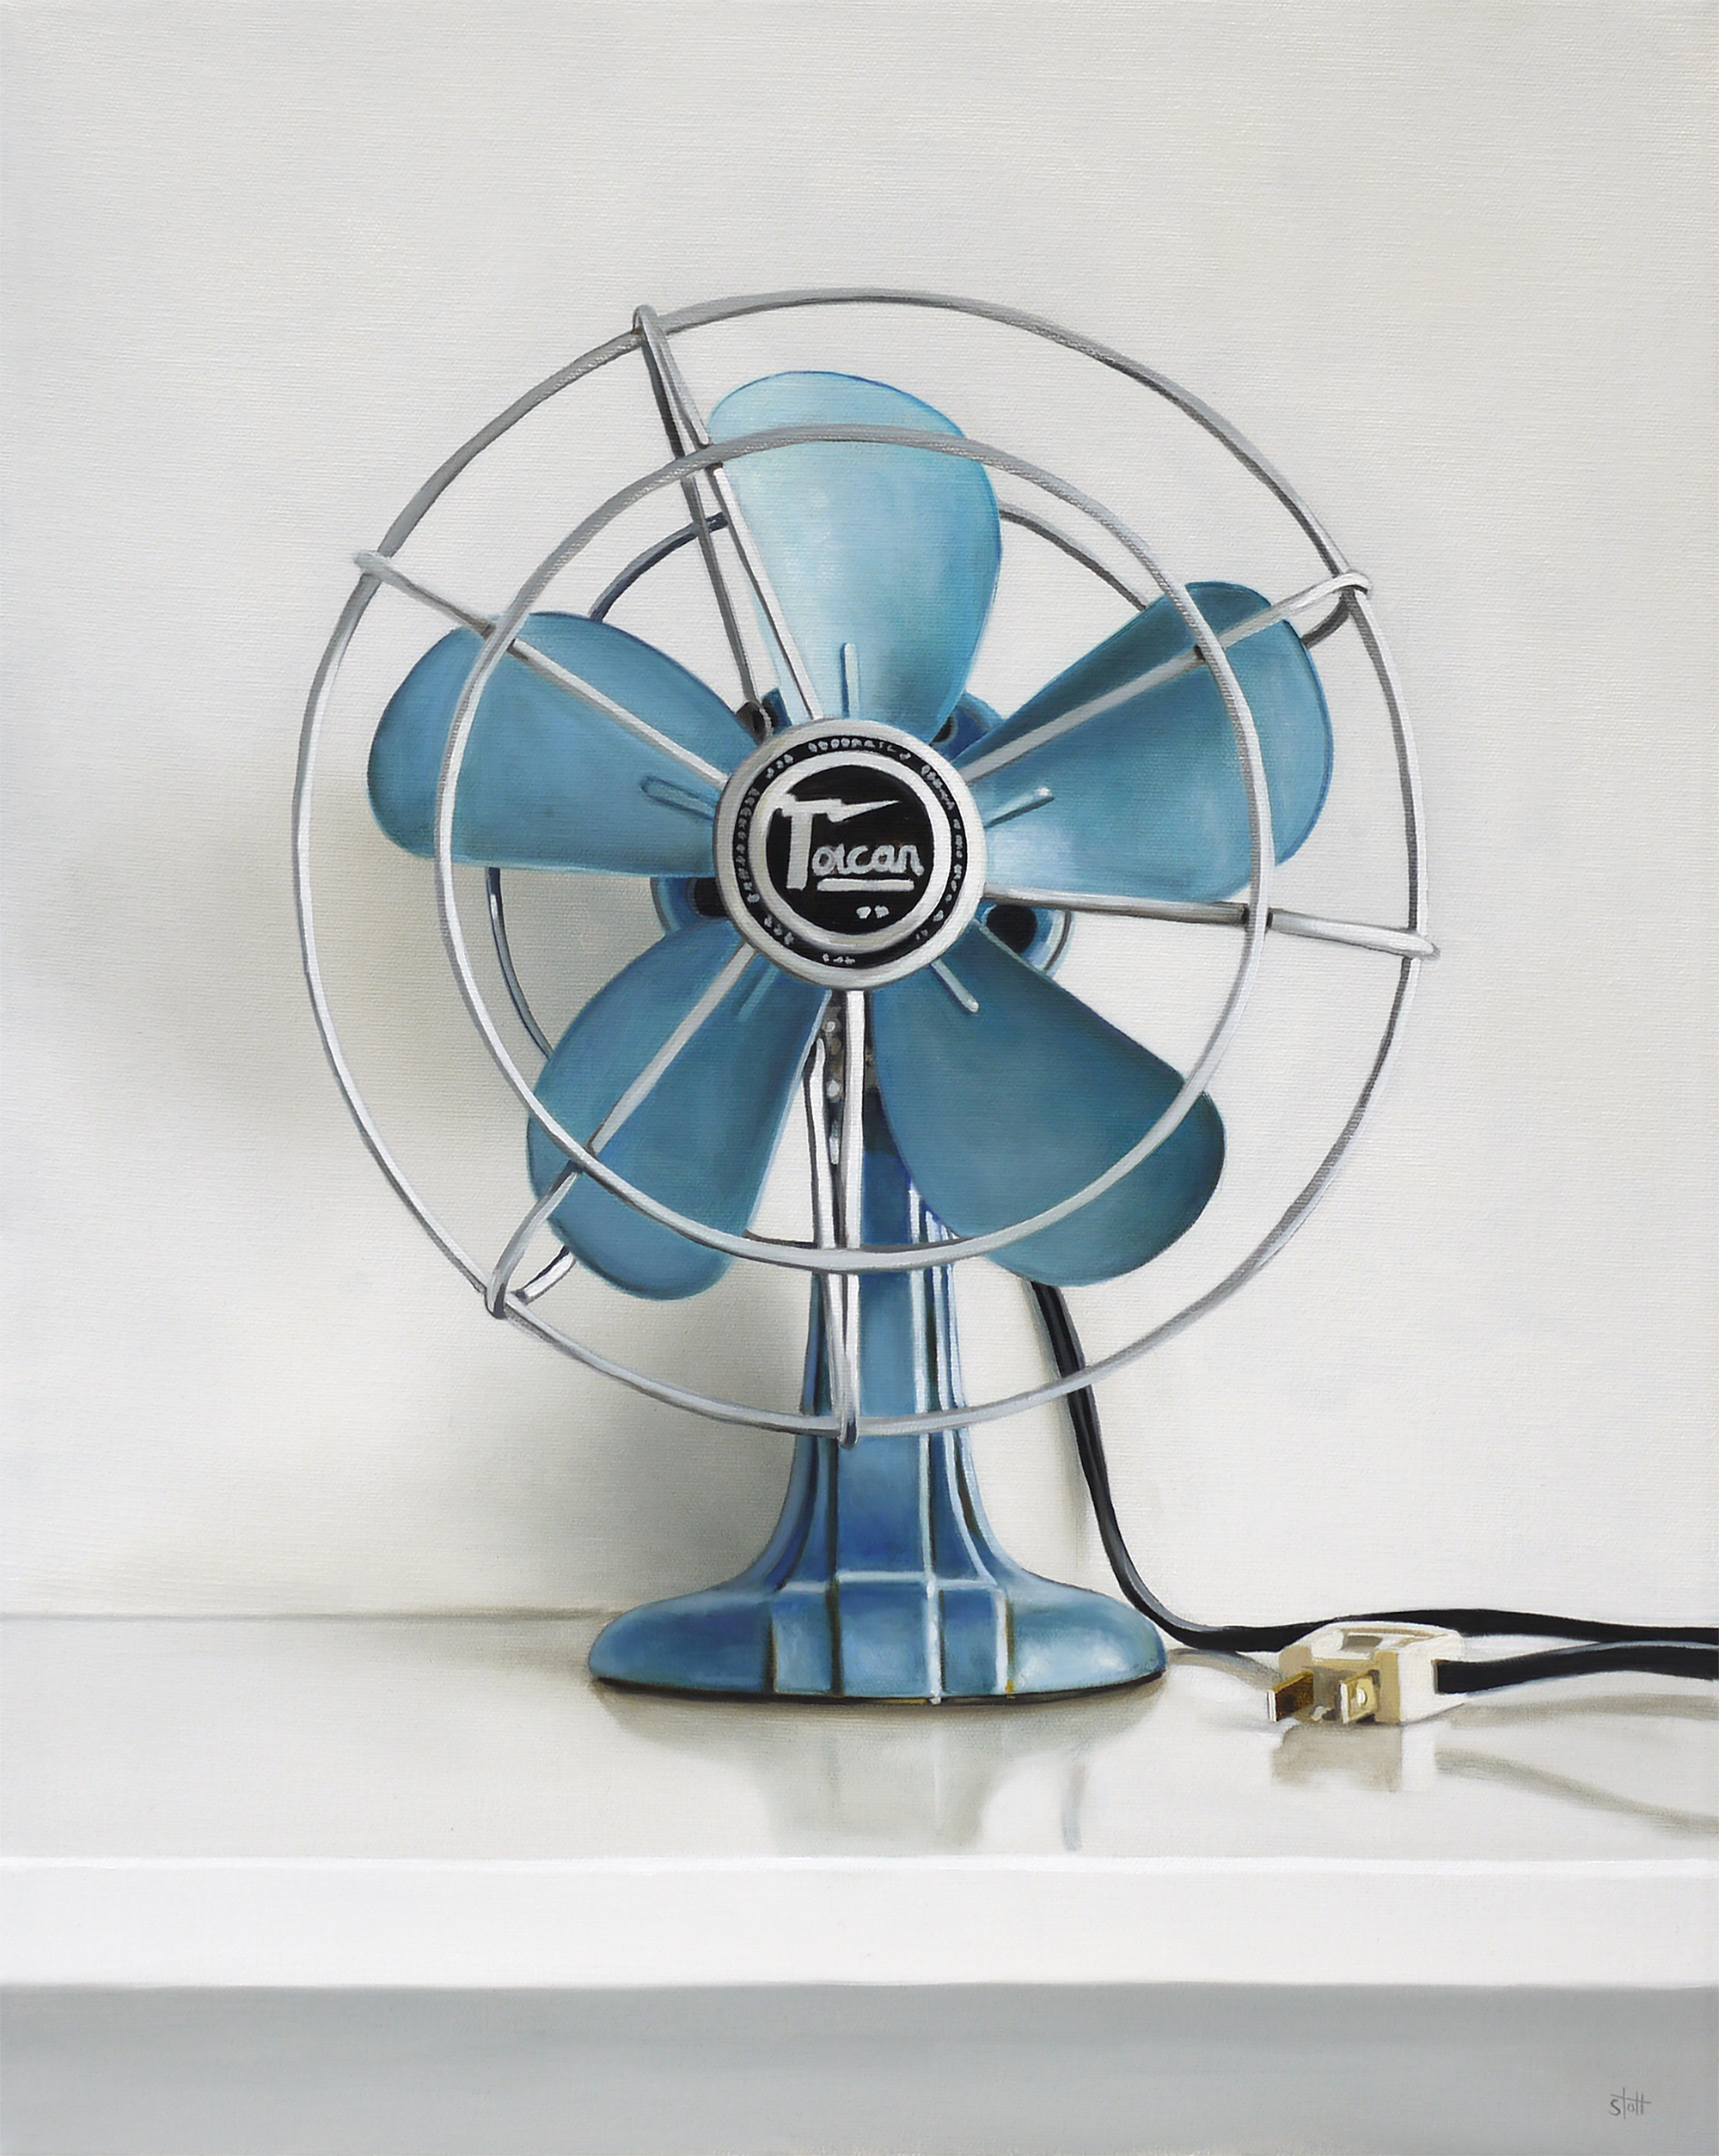 Vintage Toucan Electric Fan by Christopher Stott